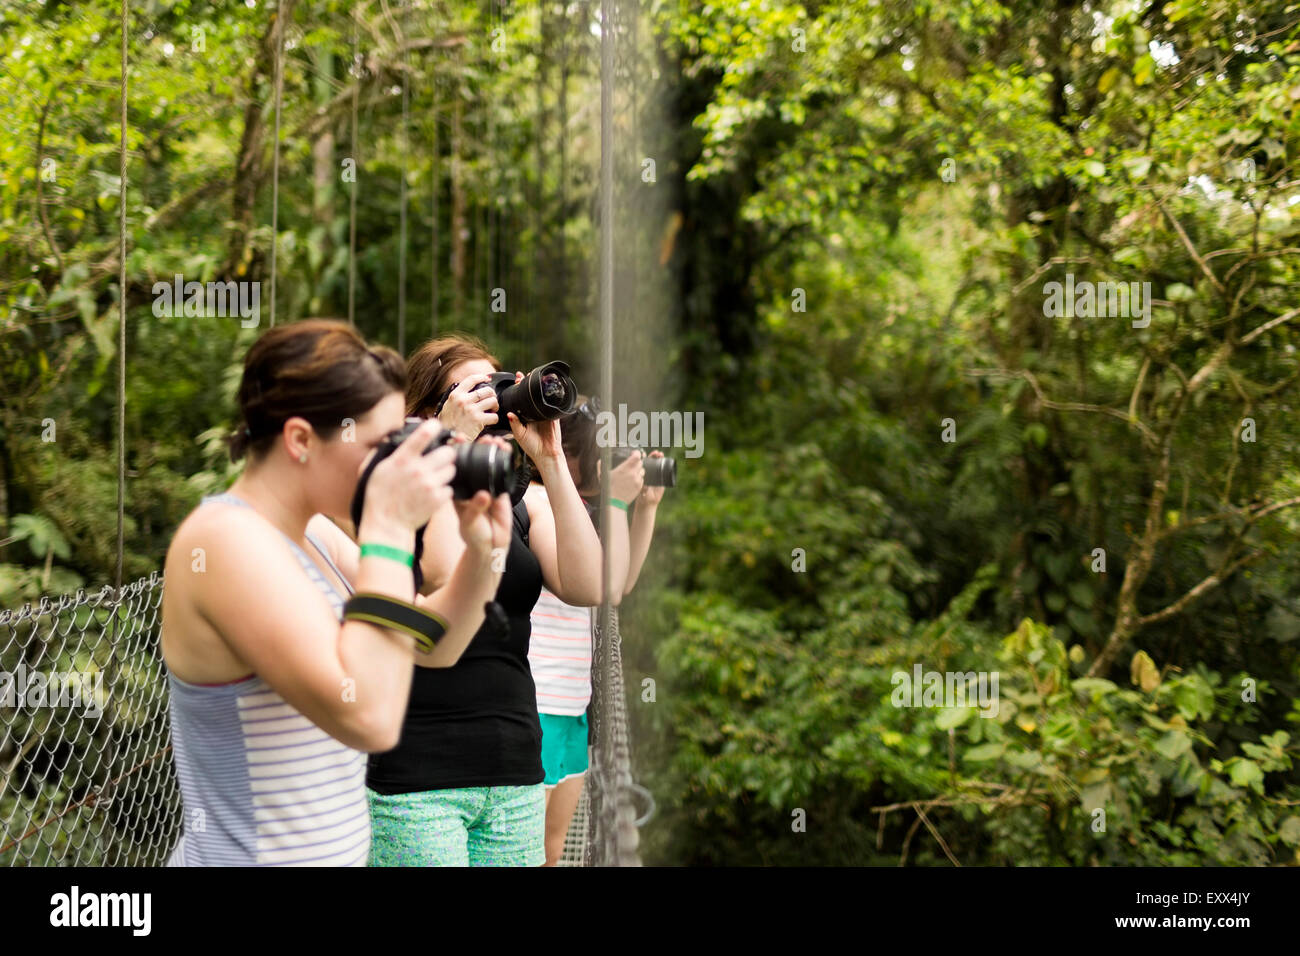 Young women photographing in forest - Stock Image